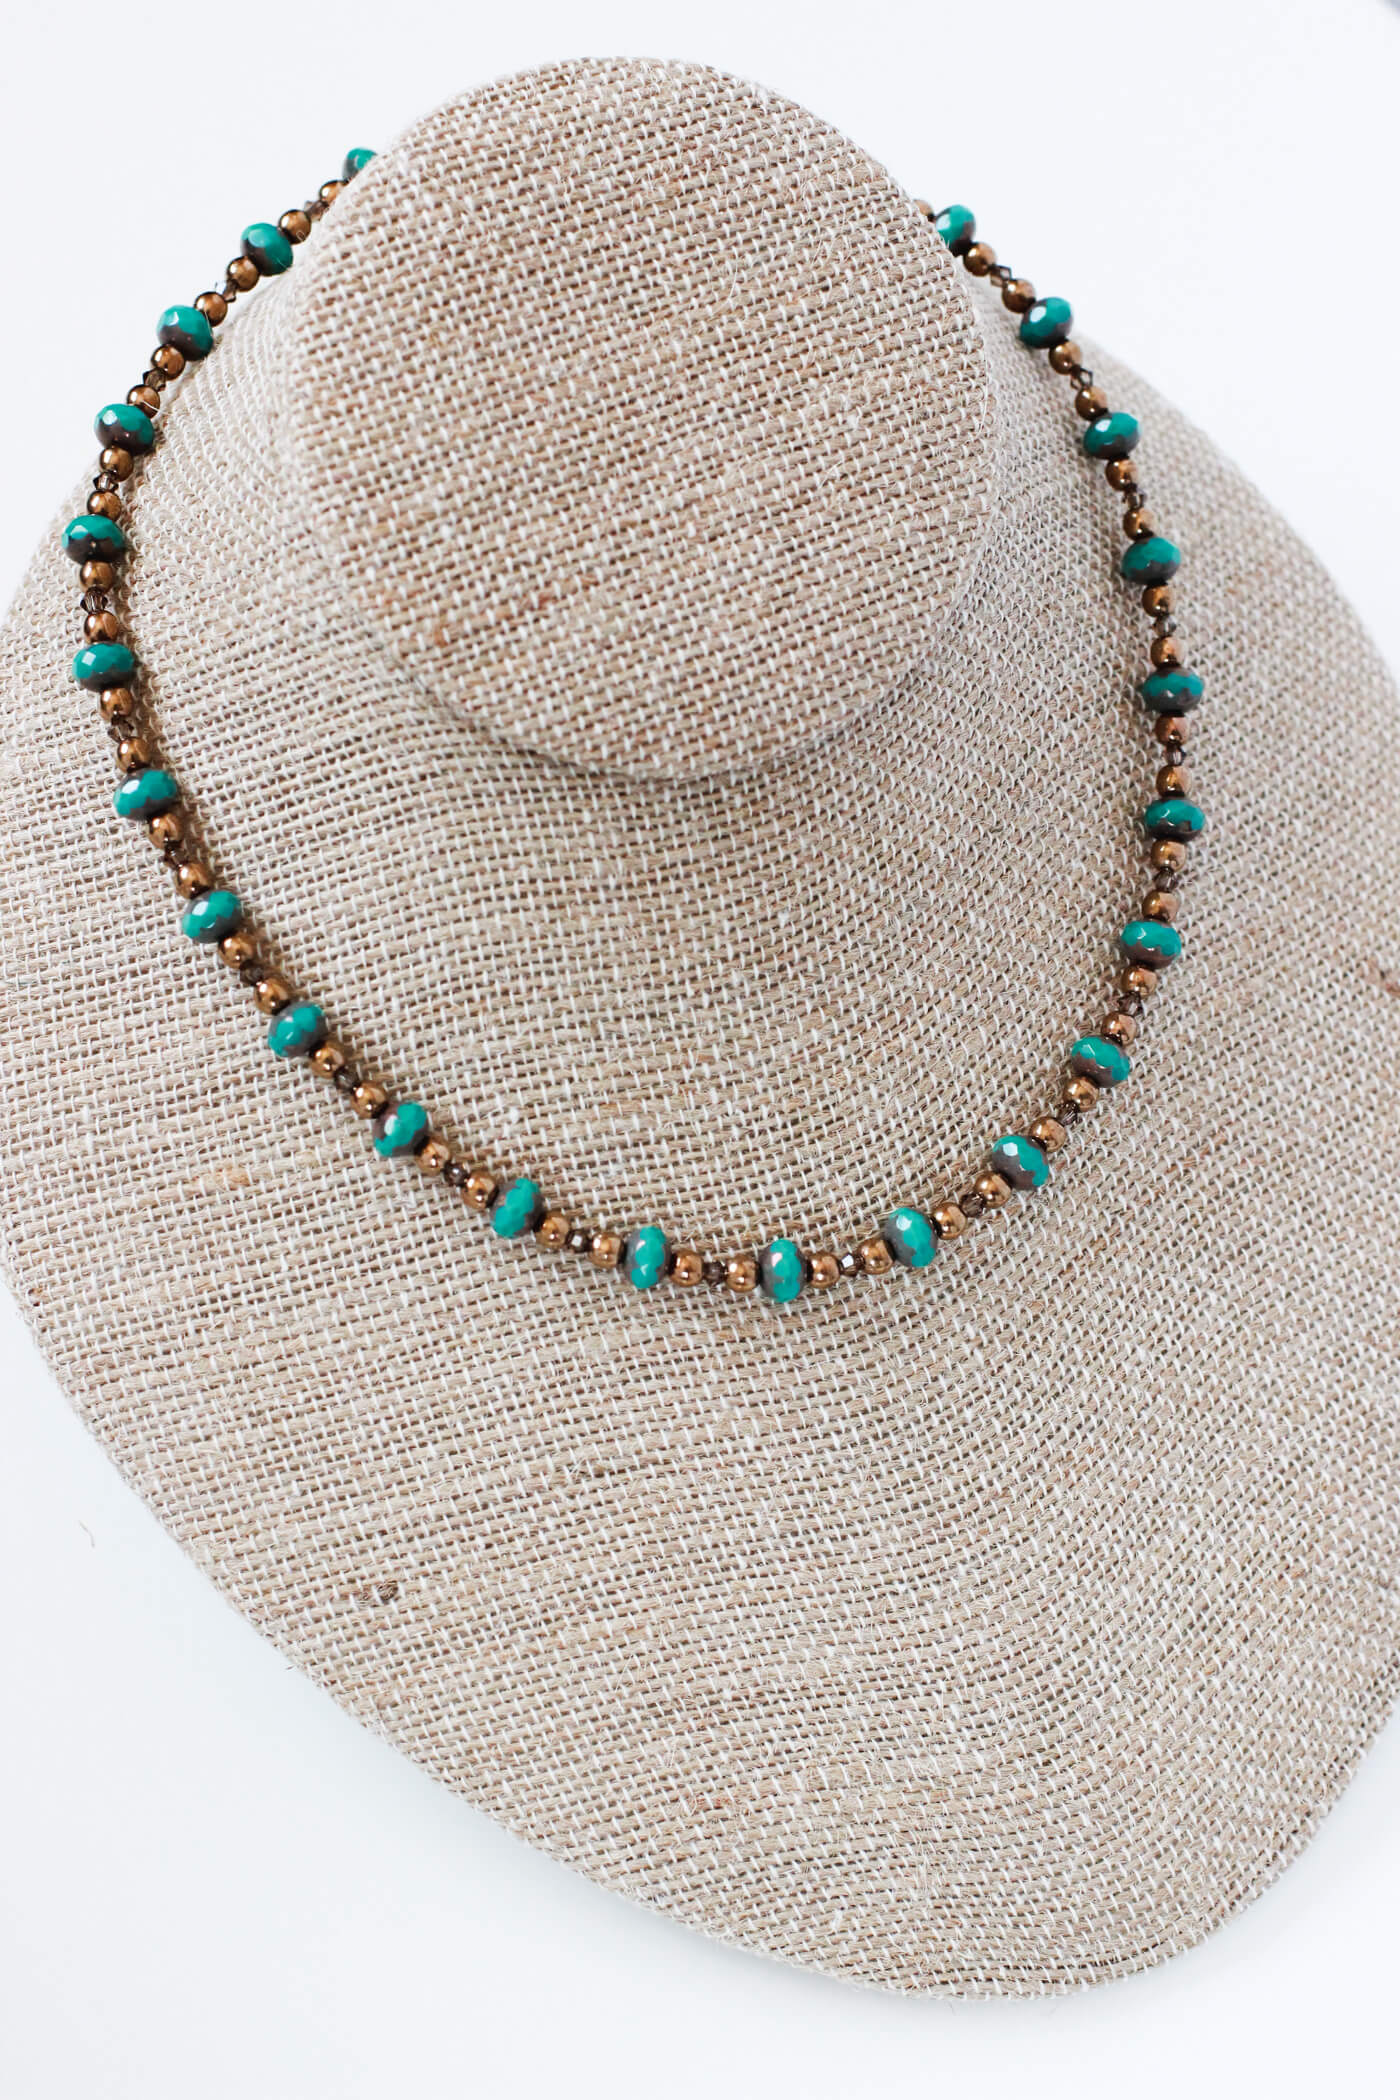 Fall Necklace – Designer Beaded Jewelry by Kaleidoscopes And Polka Dots